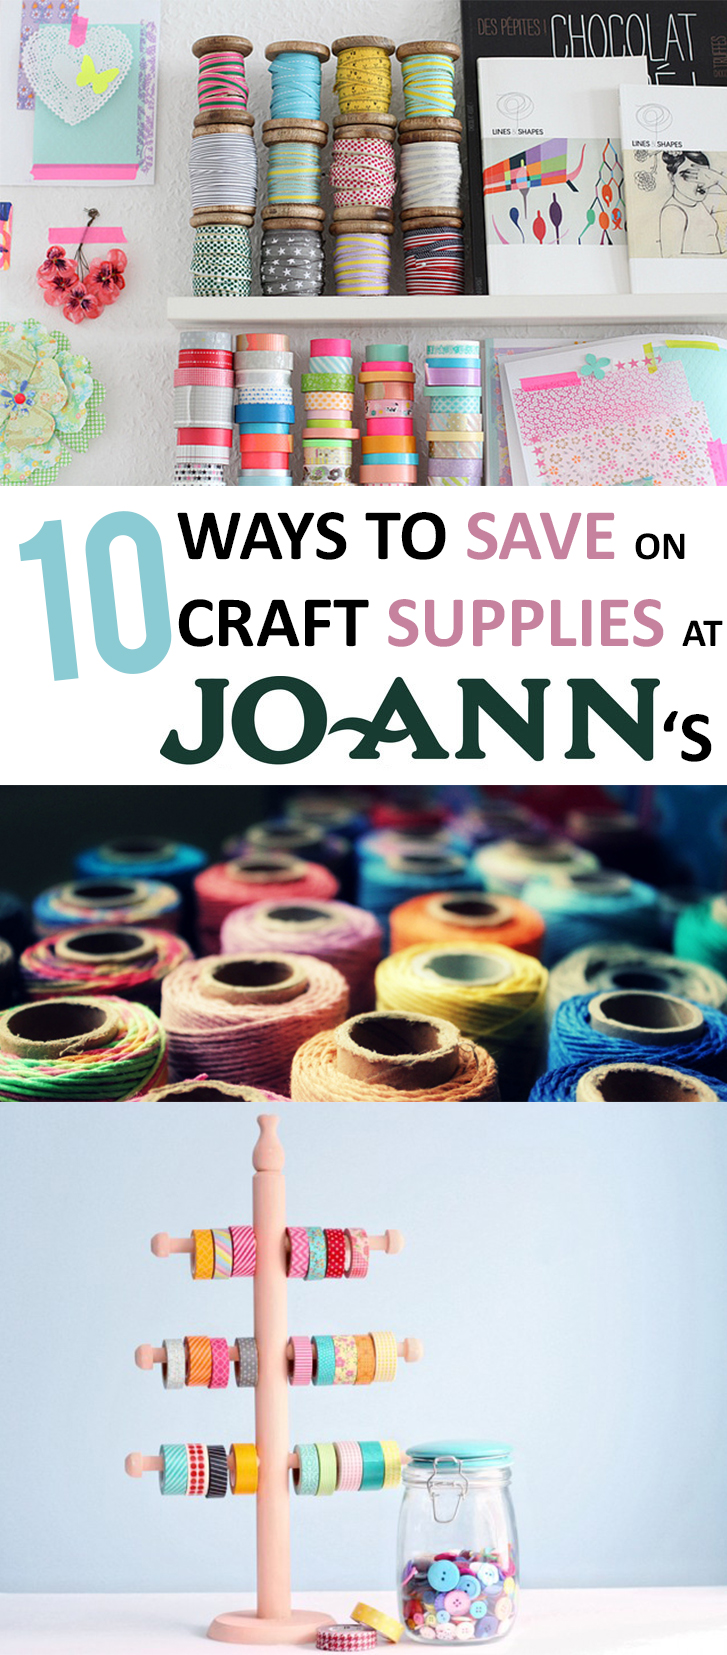 Crafting, craft hacks, save money, frugal crafting, frugal crafting tips, popular pin, home DIY, DIY crafting.